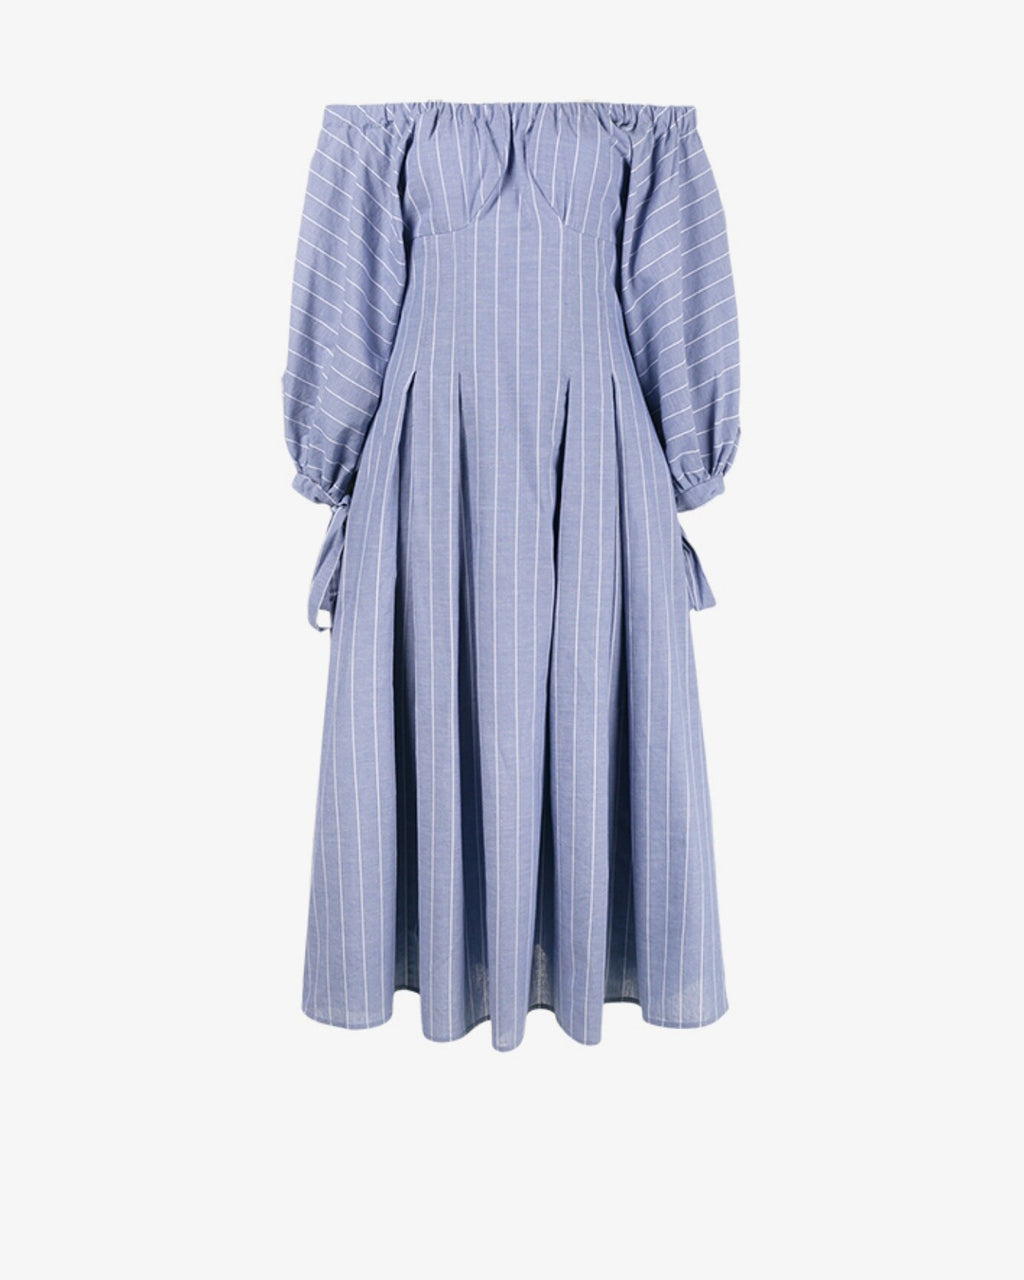 Greta Open-Neck Dress Cotton Stripe Blue - Browns - Not for online